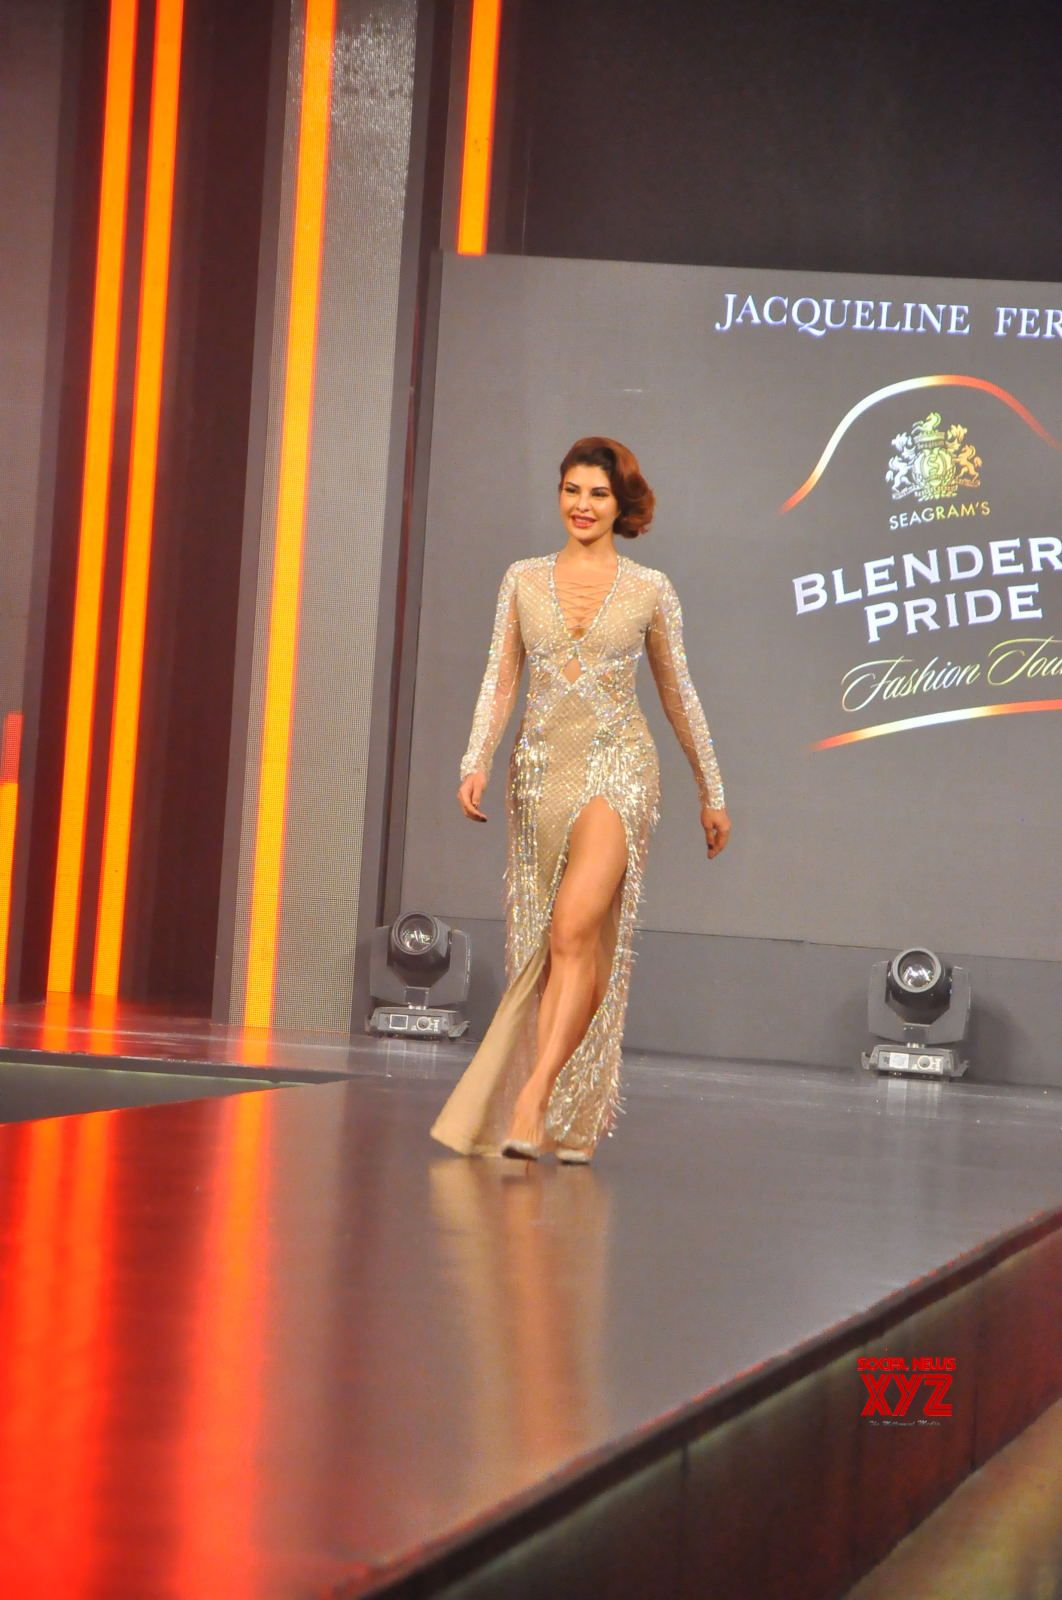 Blenders Pride Fashion Tour